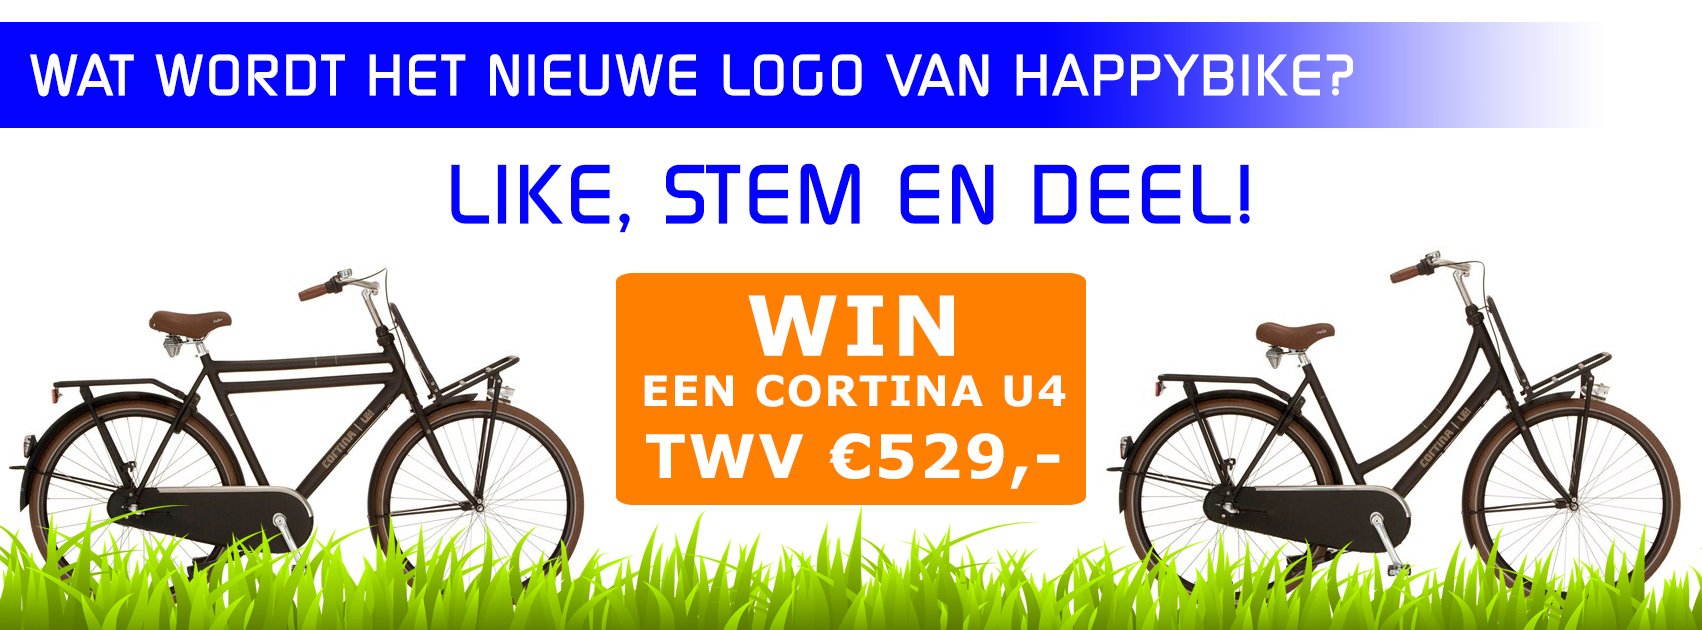 Like, stem en deel!